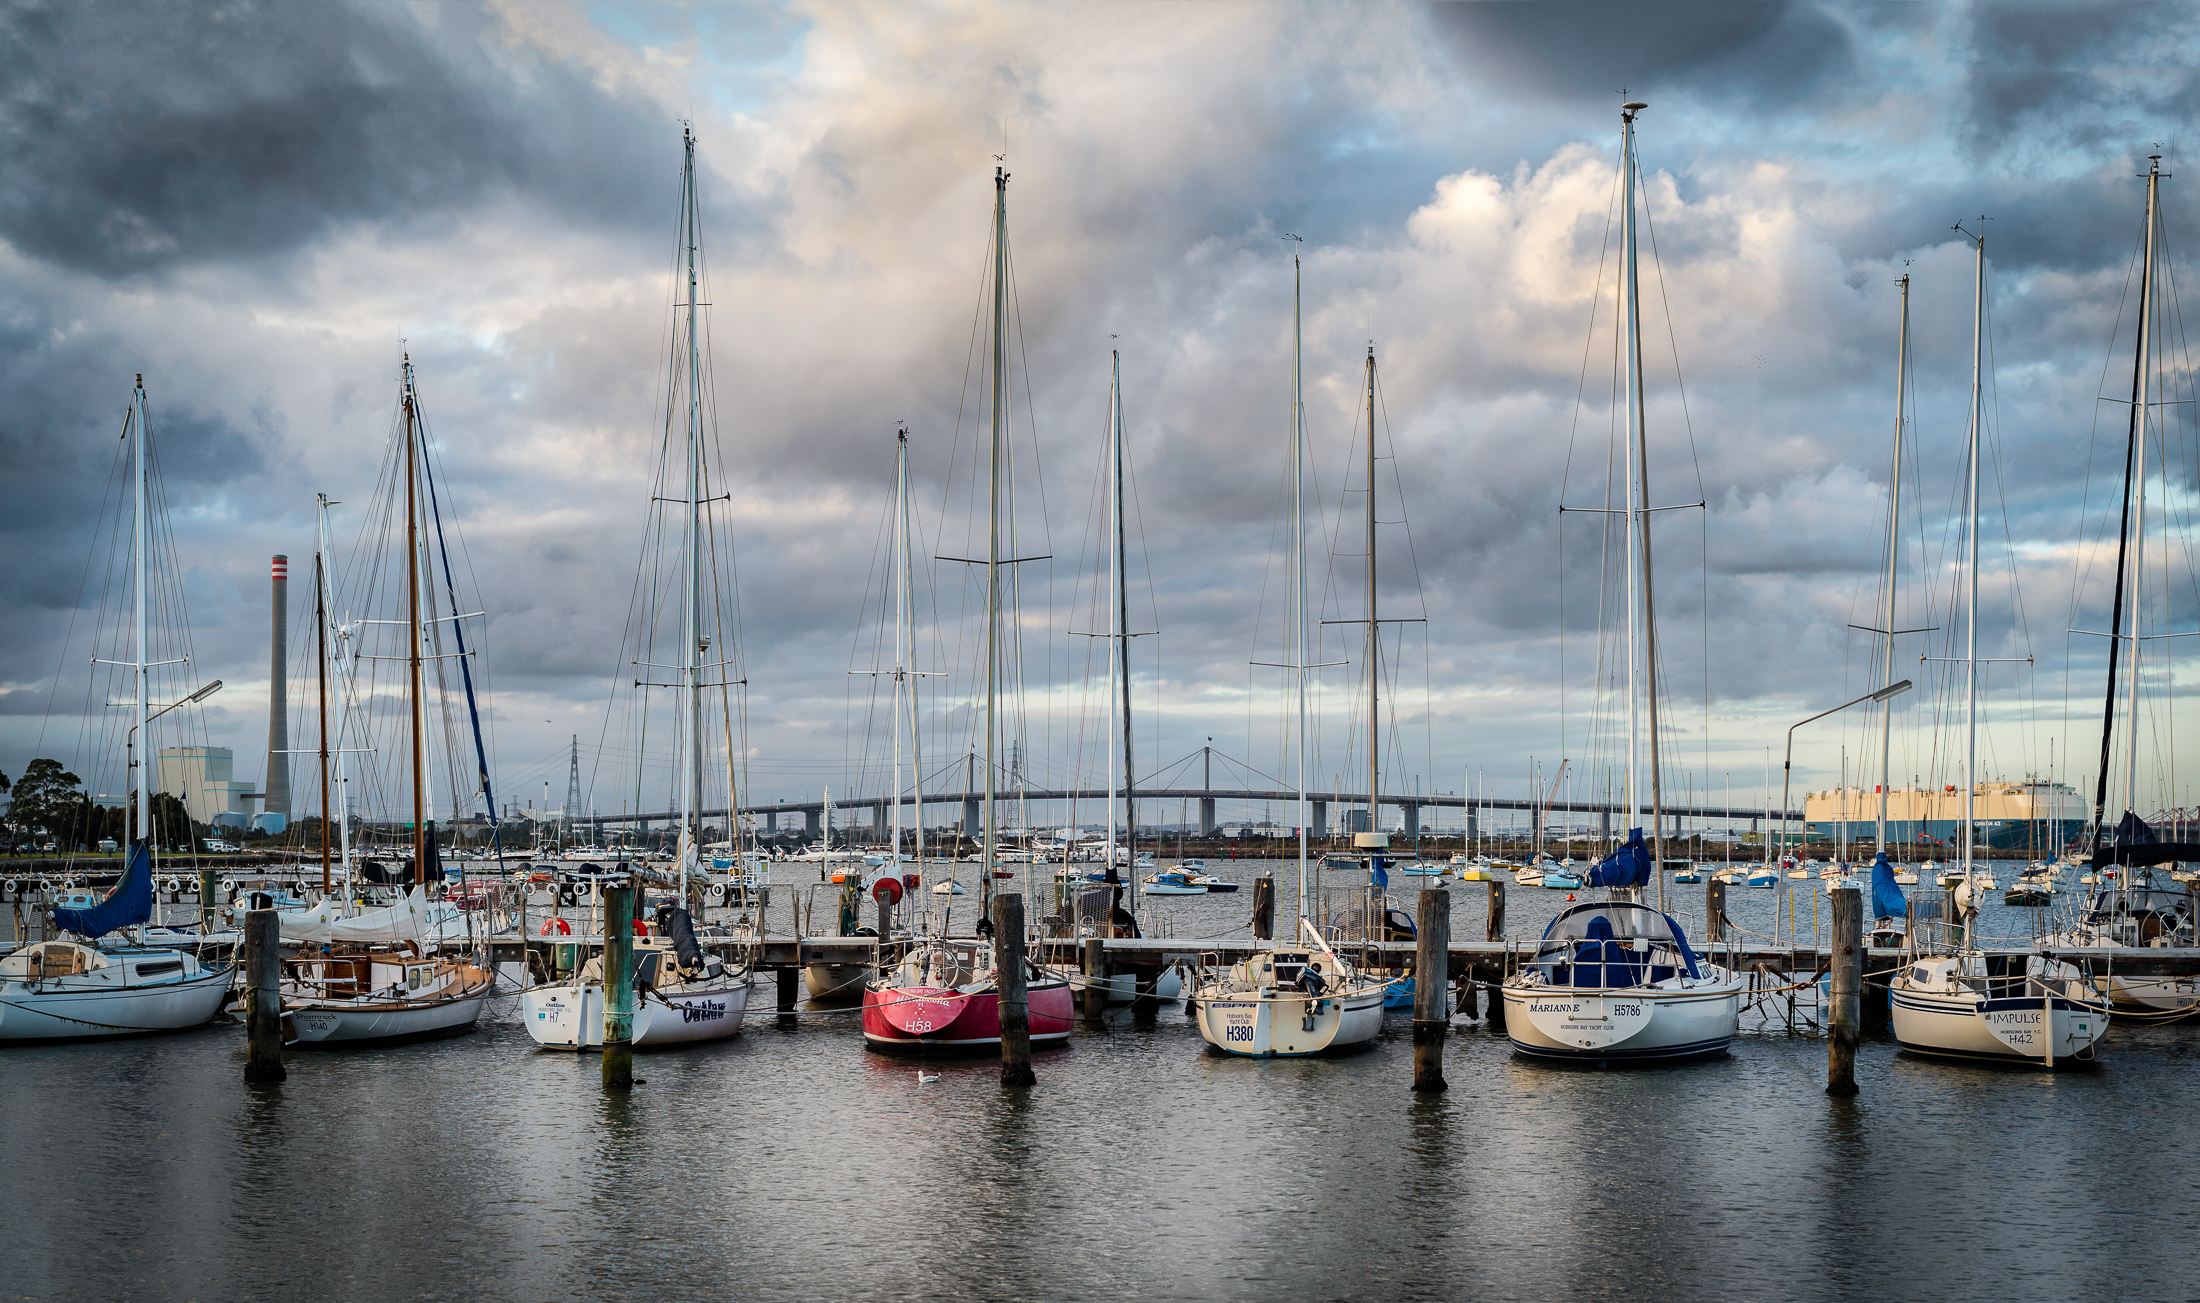 A row of yachts watch the autumn sunset across Hobsons Bay in Williamstown (Victoria, Australia) - Photo by Paul Tadday